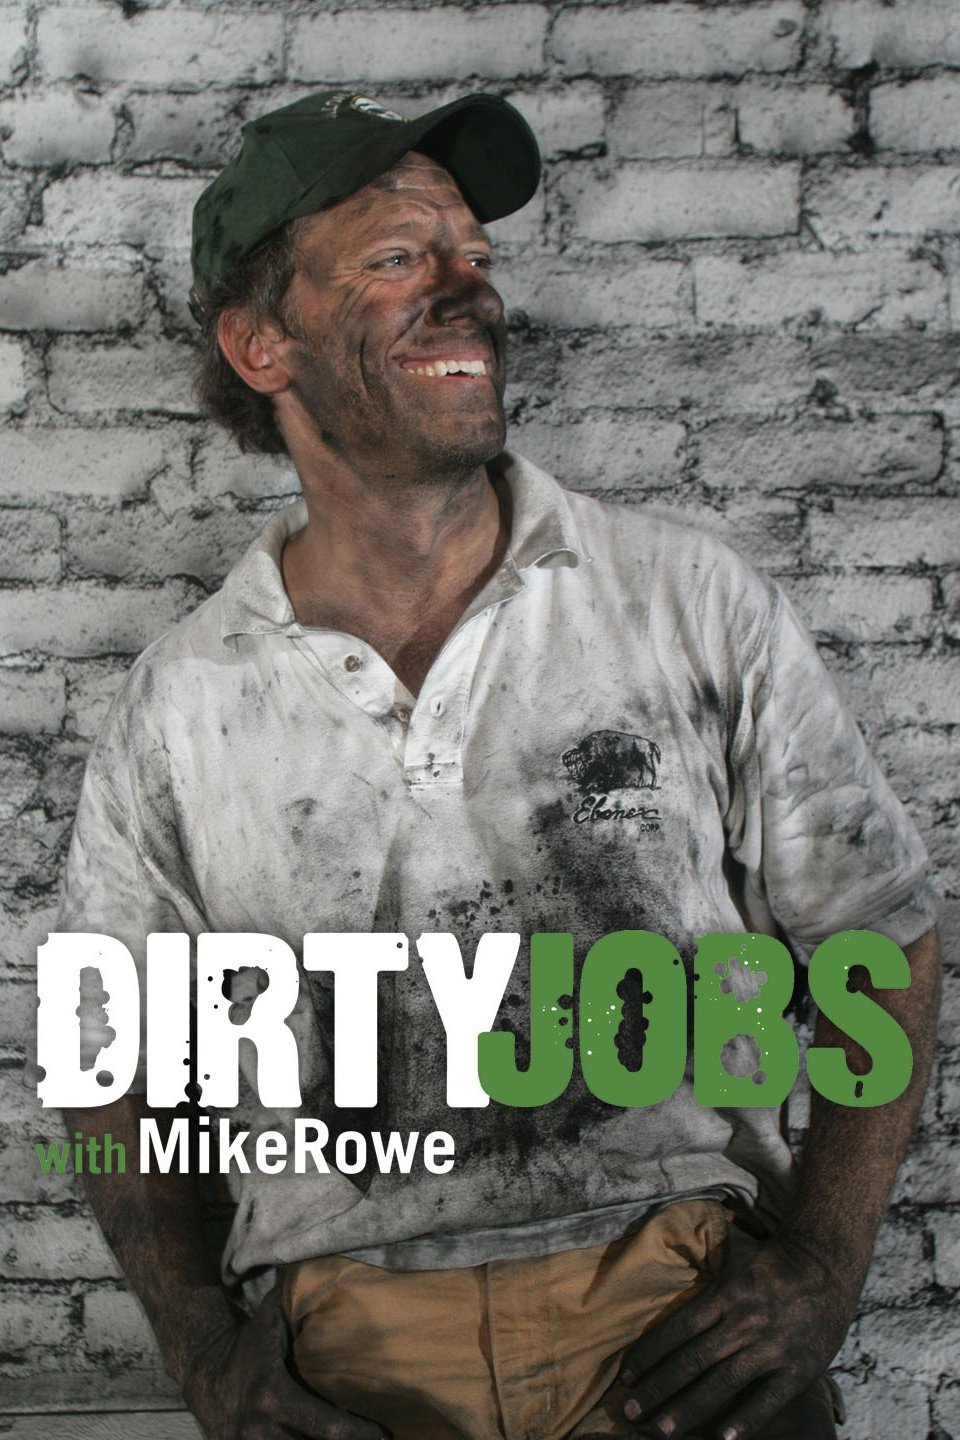 Pin on Dirty Jobs with Mike Rowe